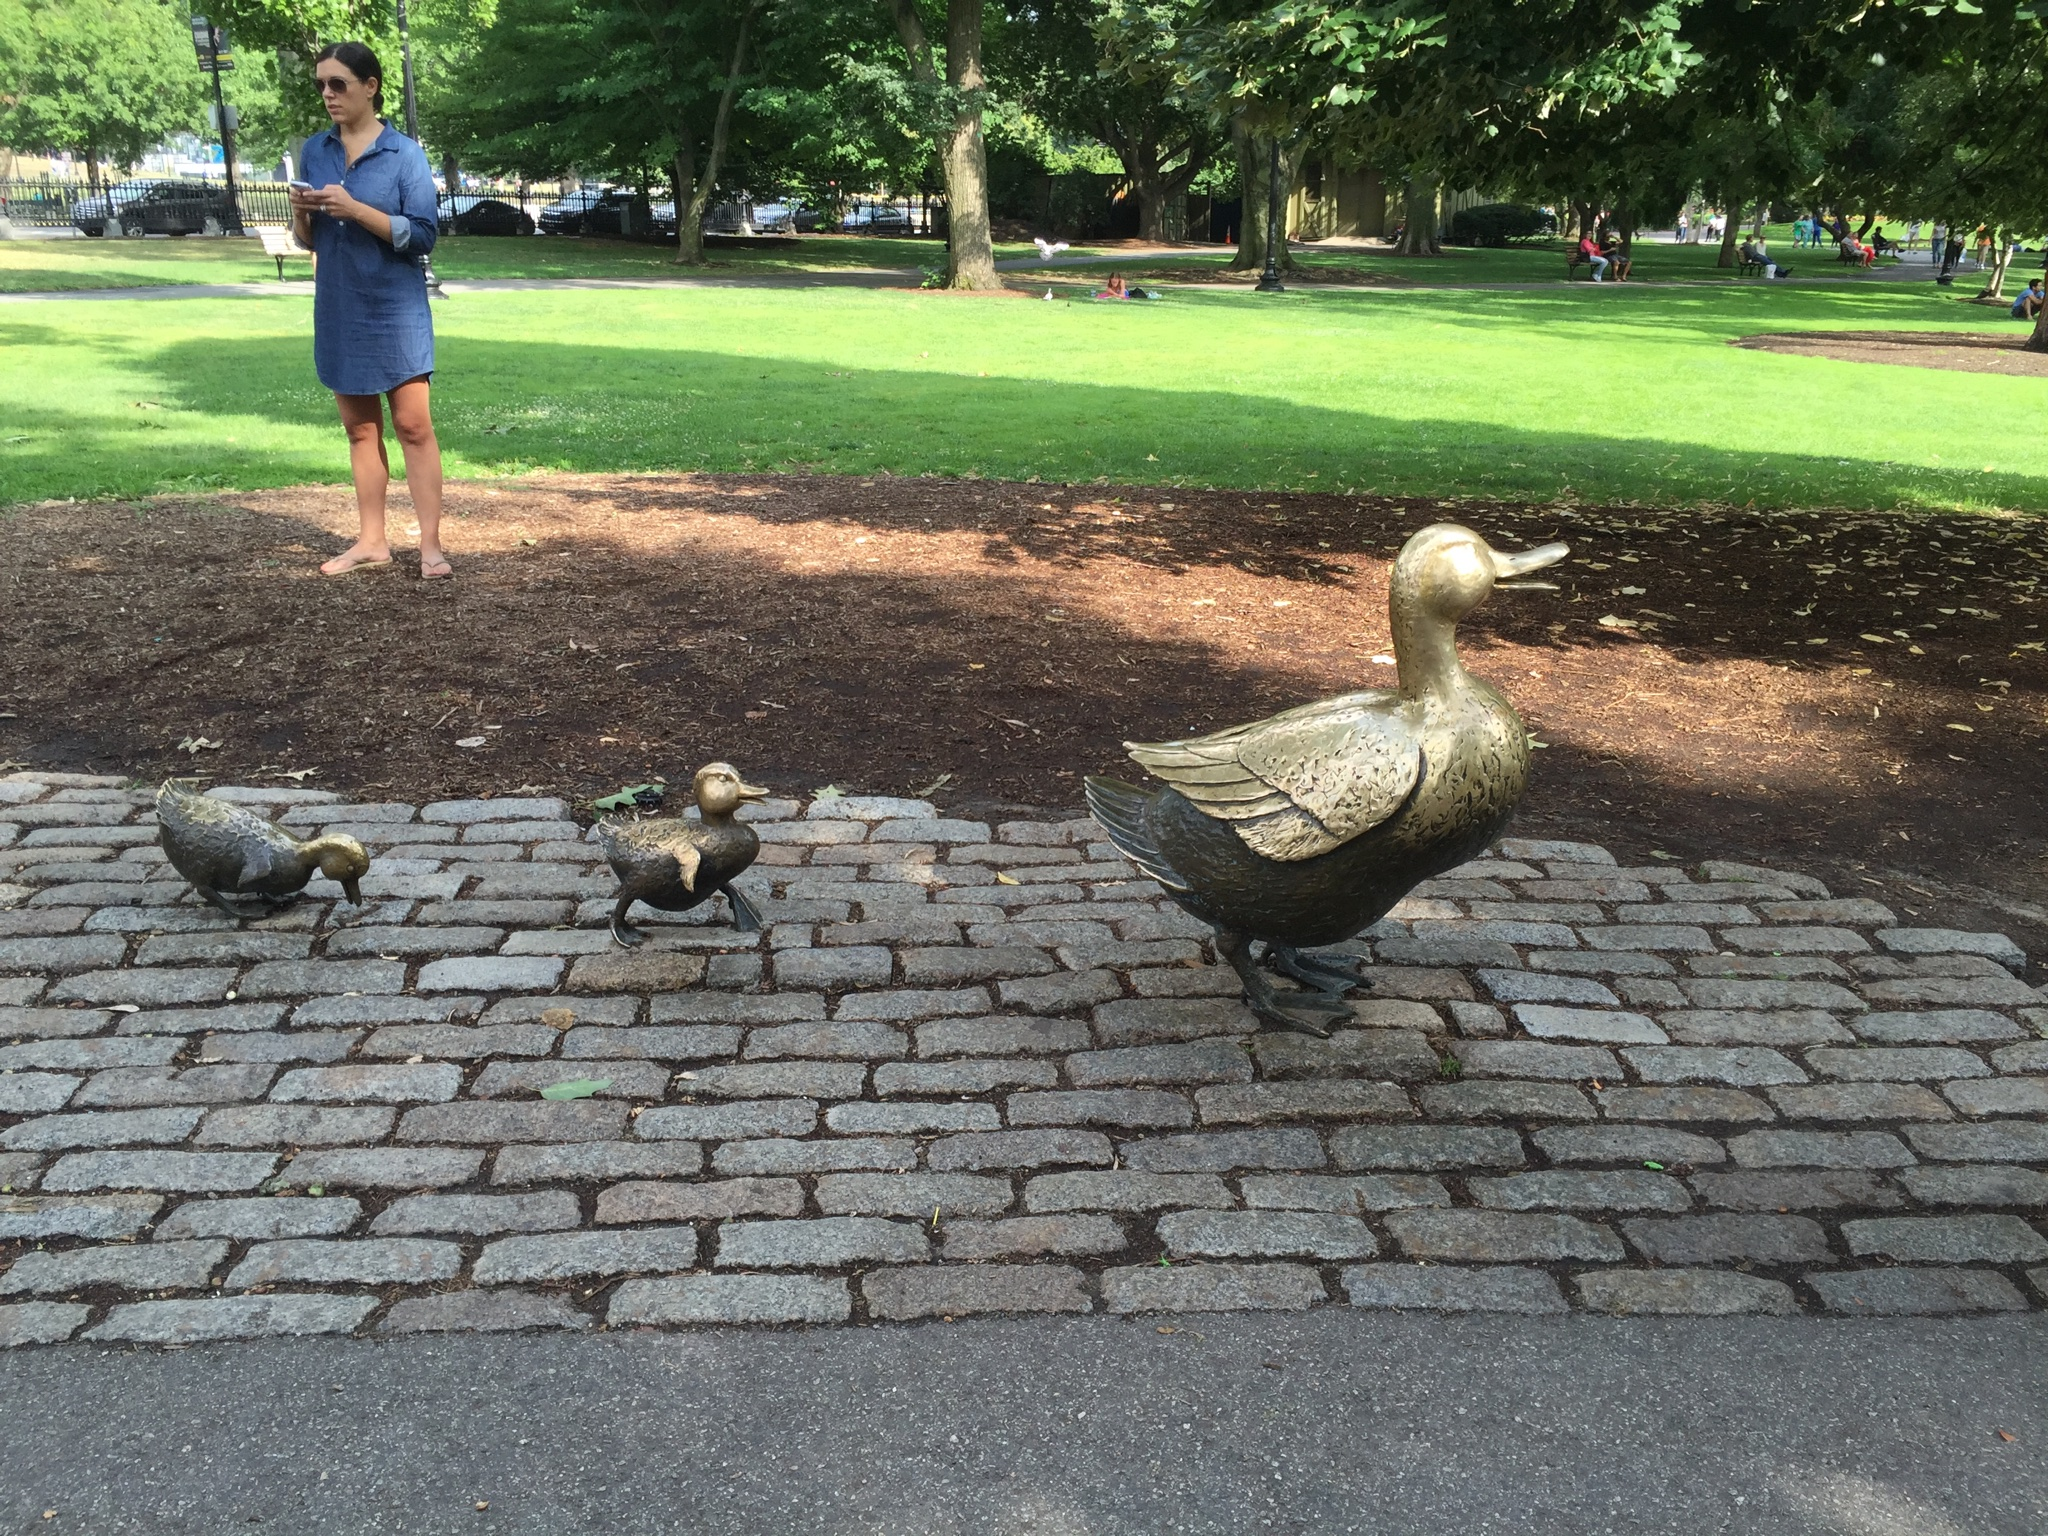 The Robert McCloskey  Make Way for Ducklings  statues in Boston's Public Garden. One of my favorite books as a child and one of my favorite cities.